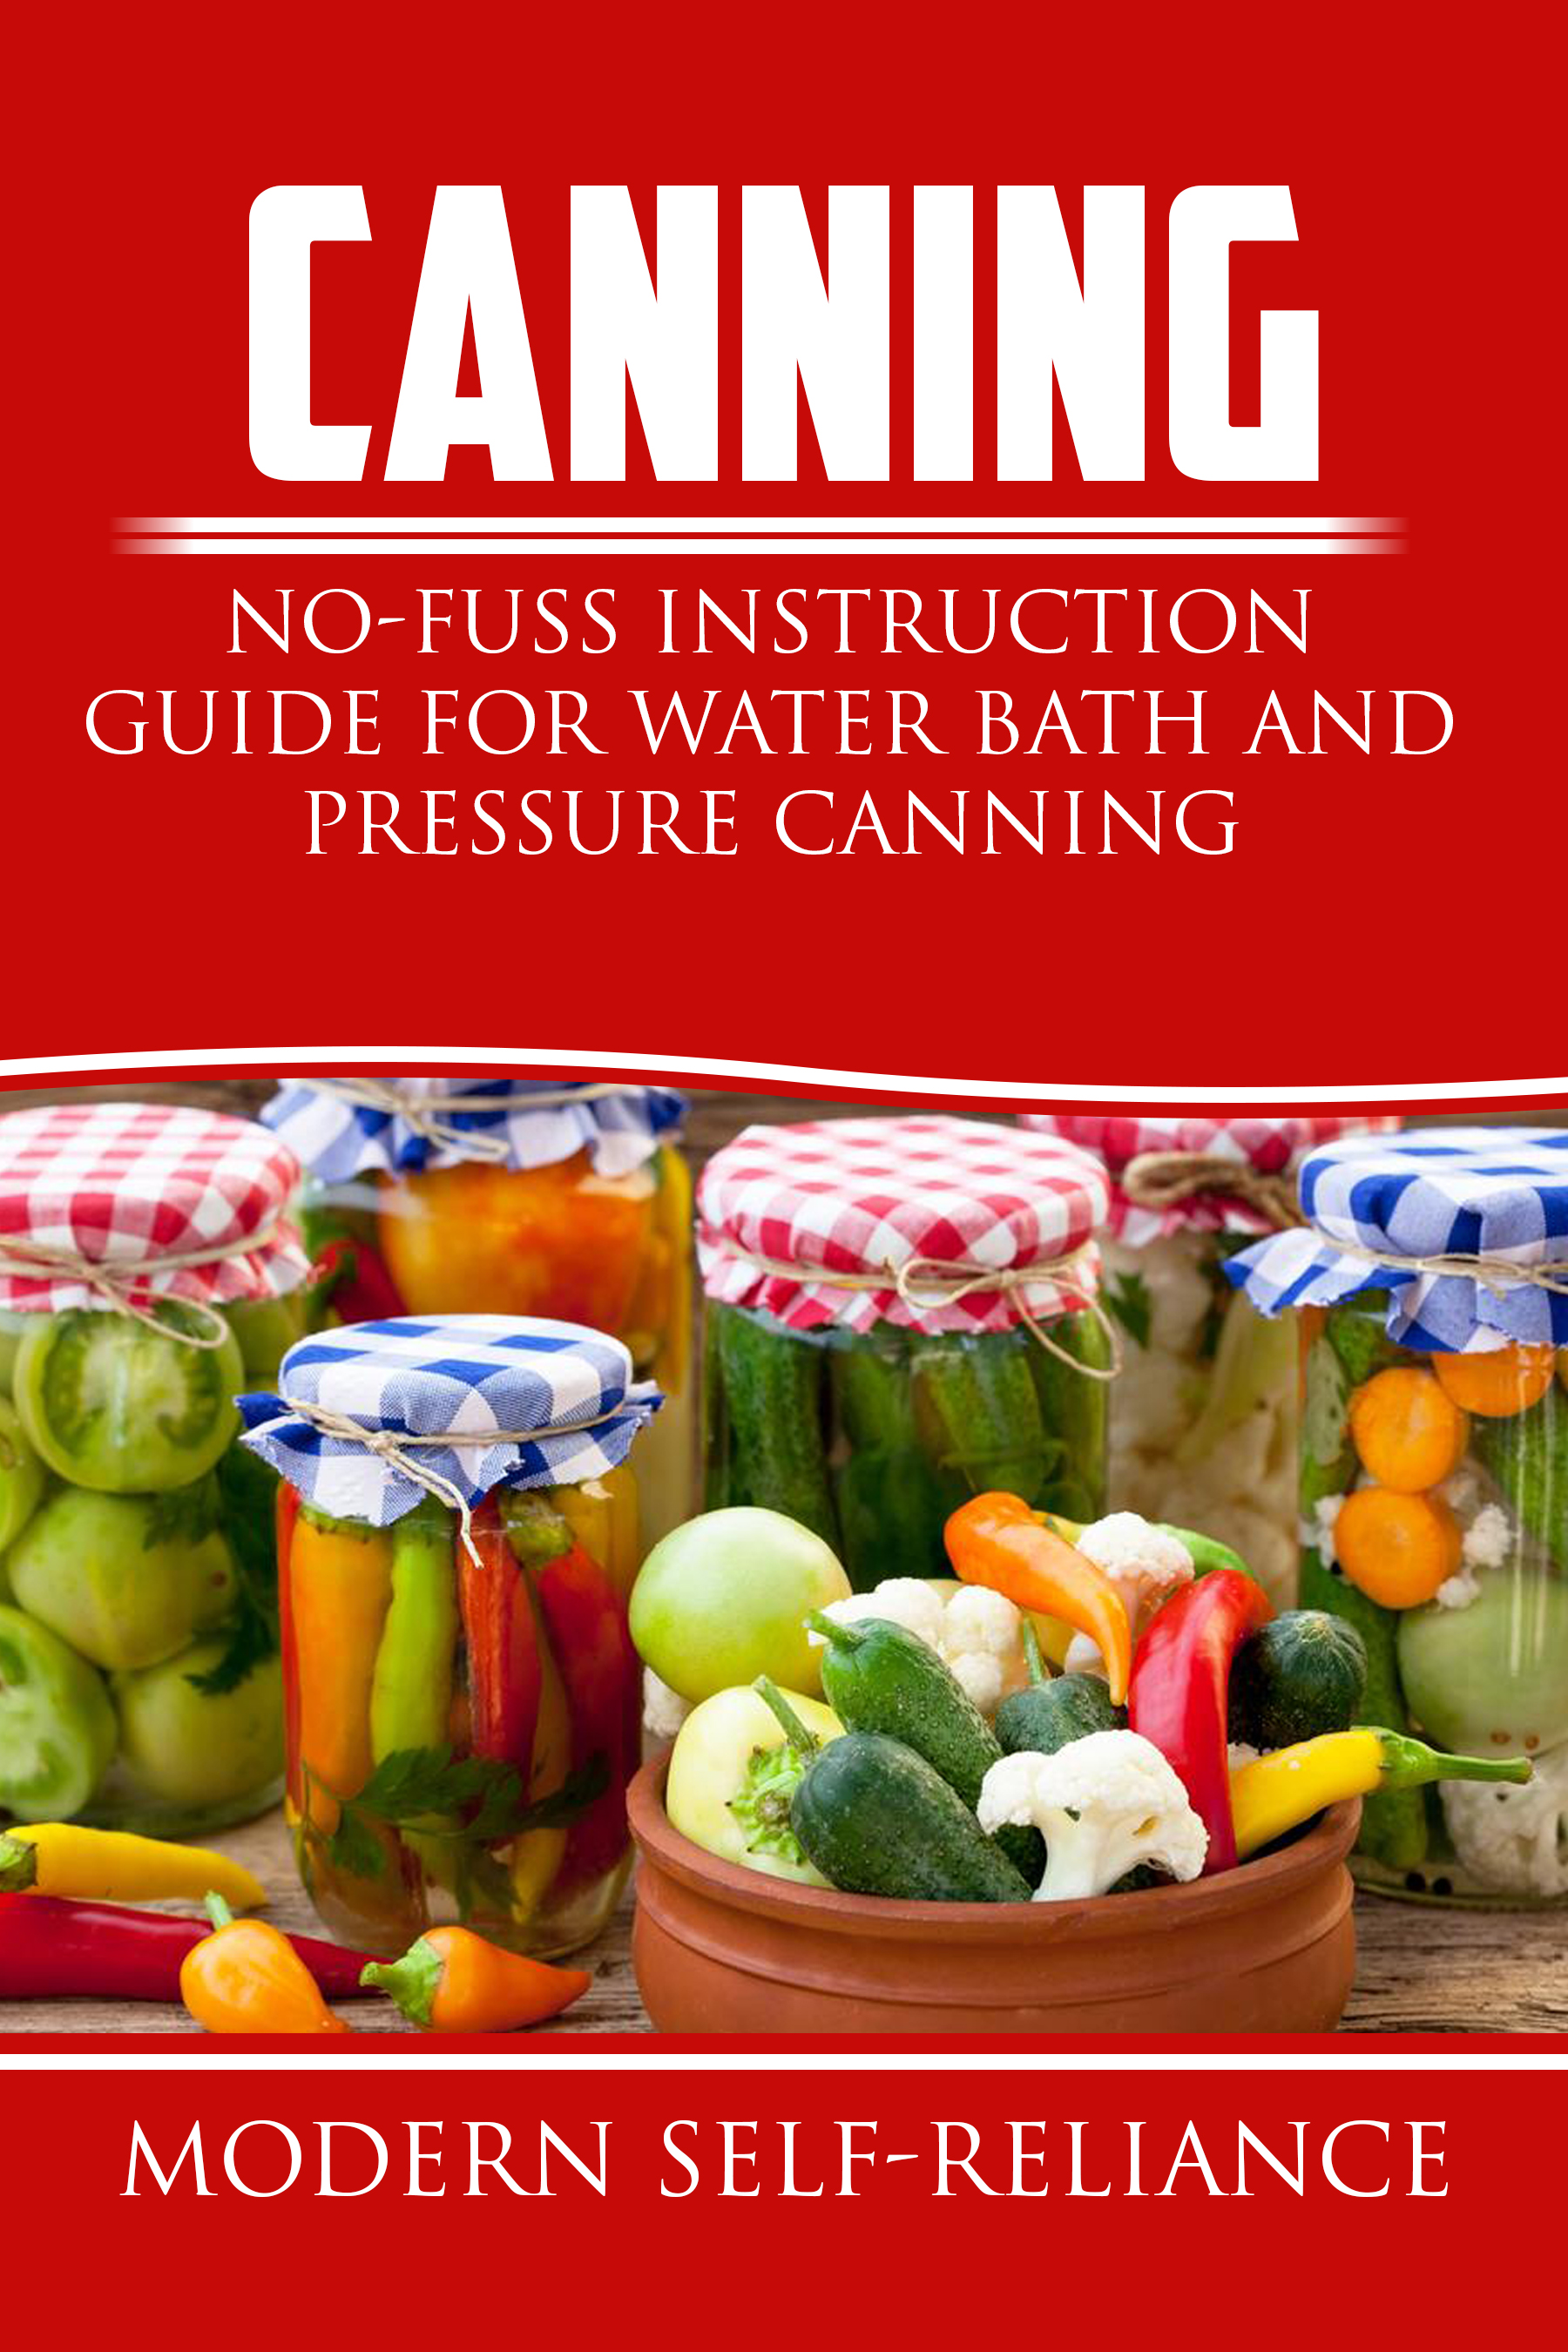 canning book cover